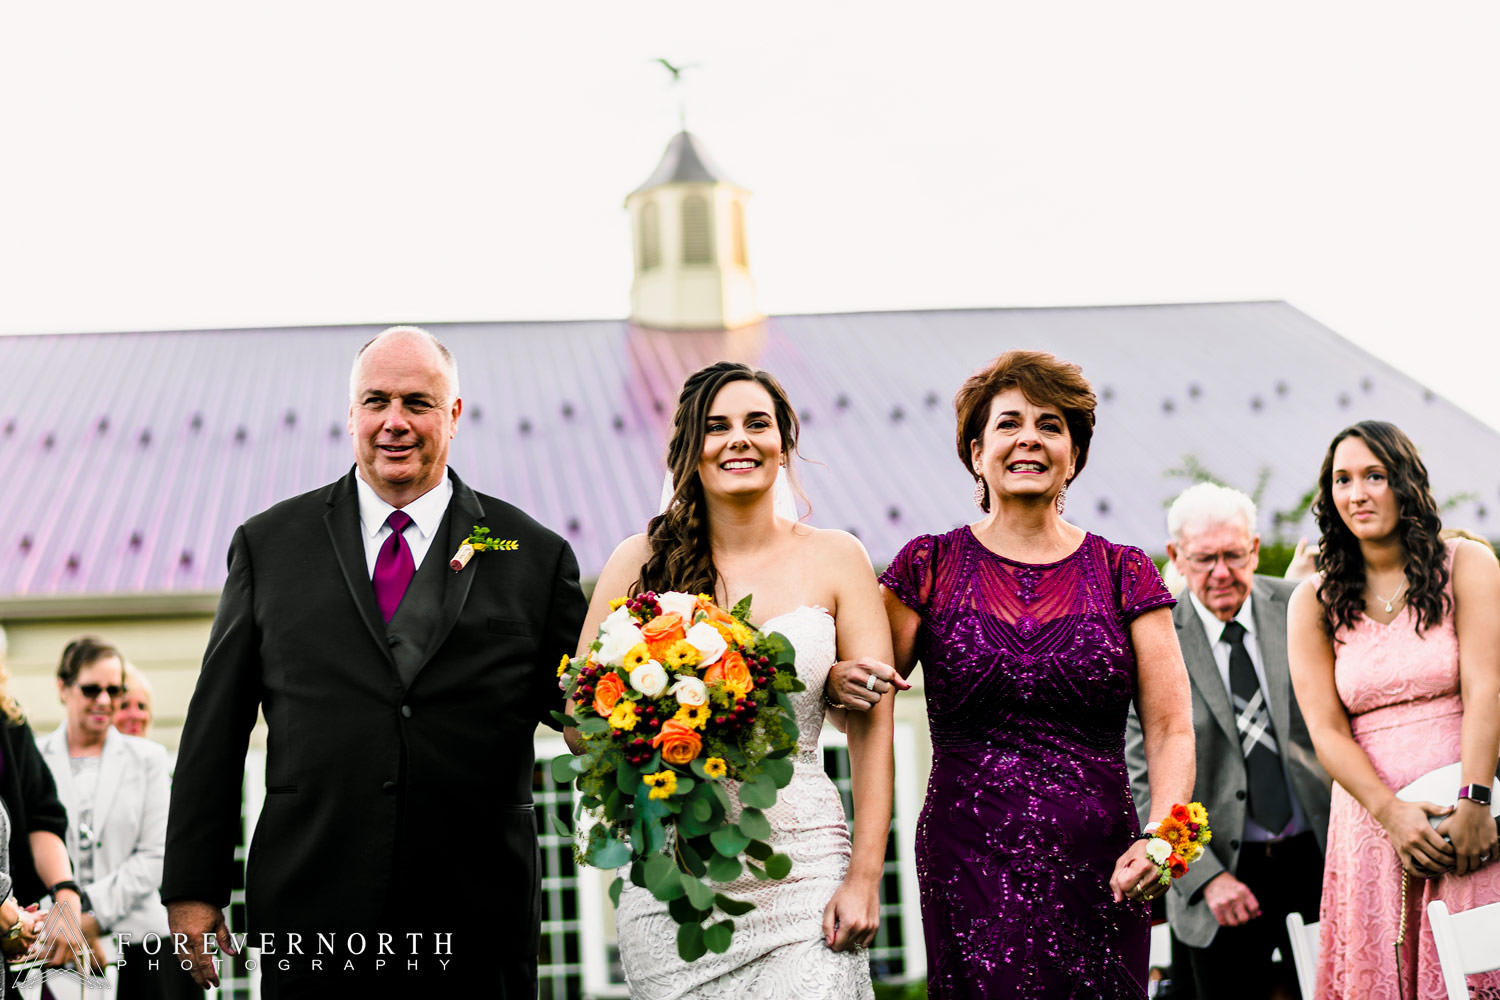 Mendyk-Valenzano-Family-Winery-NJ-Wedding-Photographer-47.JPG